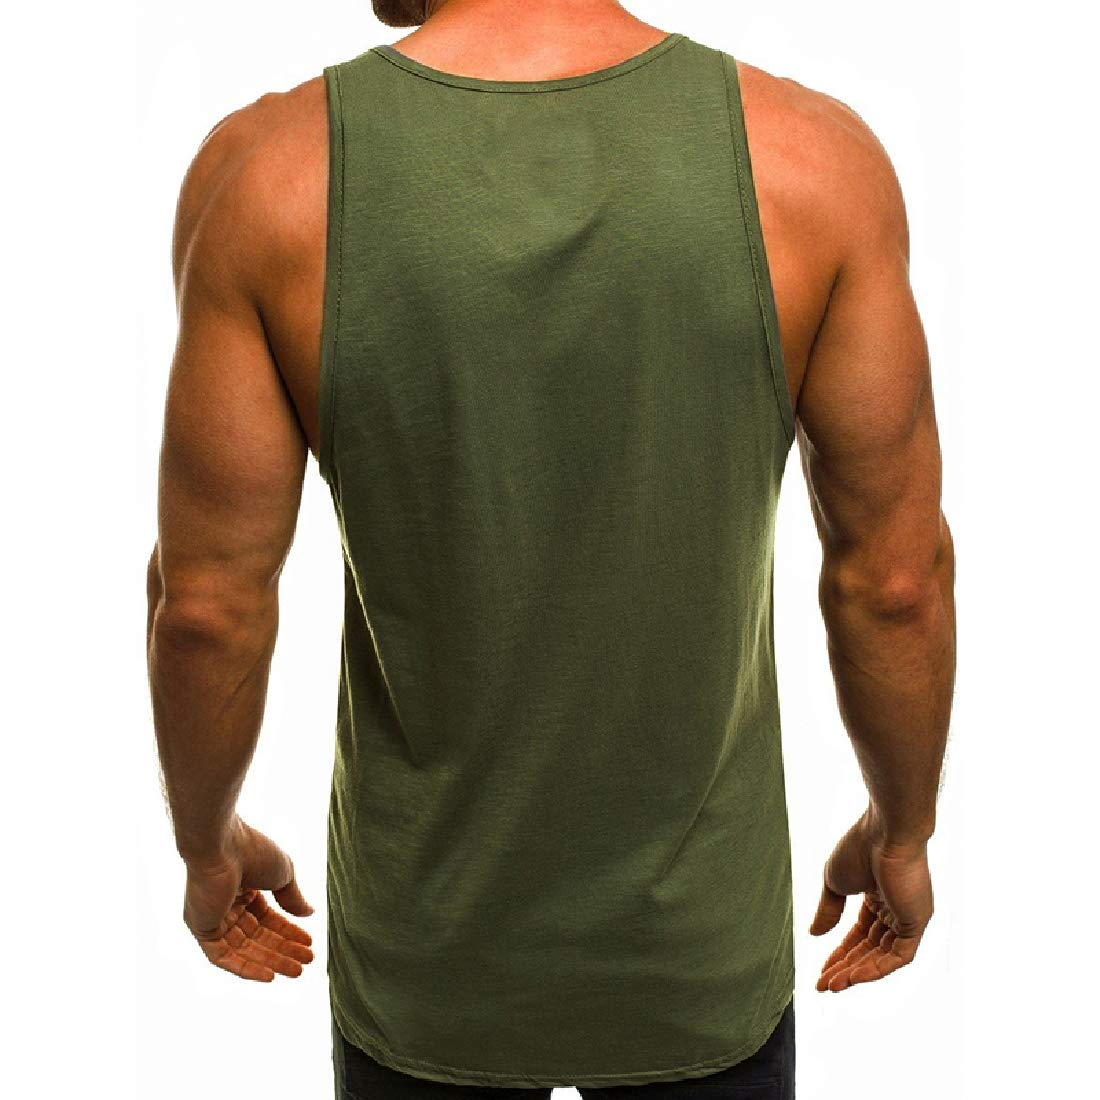 Zimaes-Men Letter Printed Relaxed Fit Sleeveless Athletic Fit Tech Tank